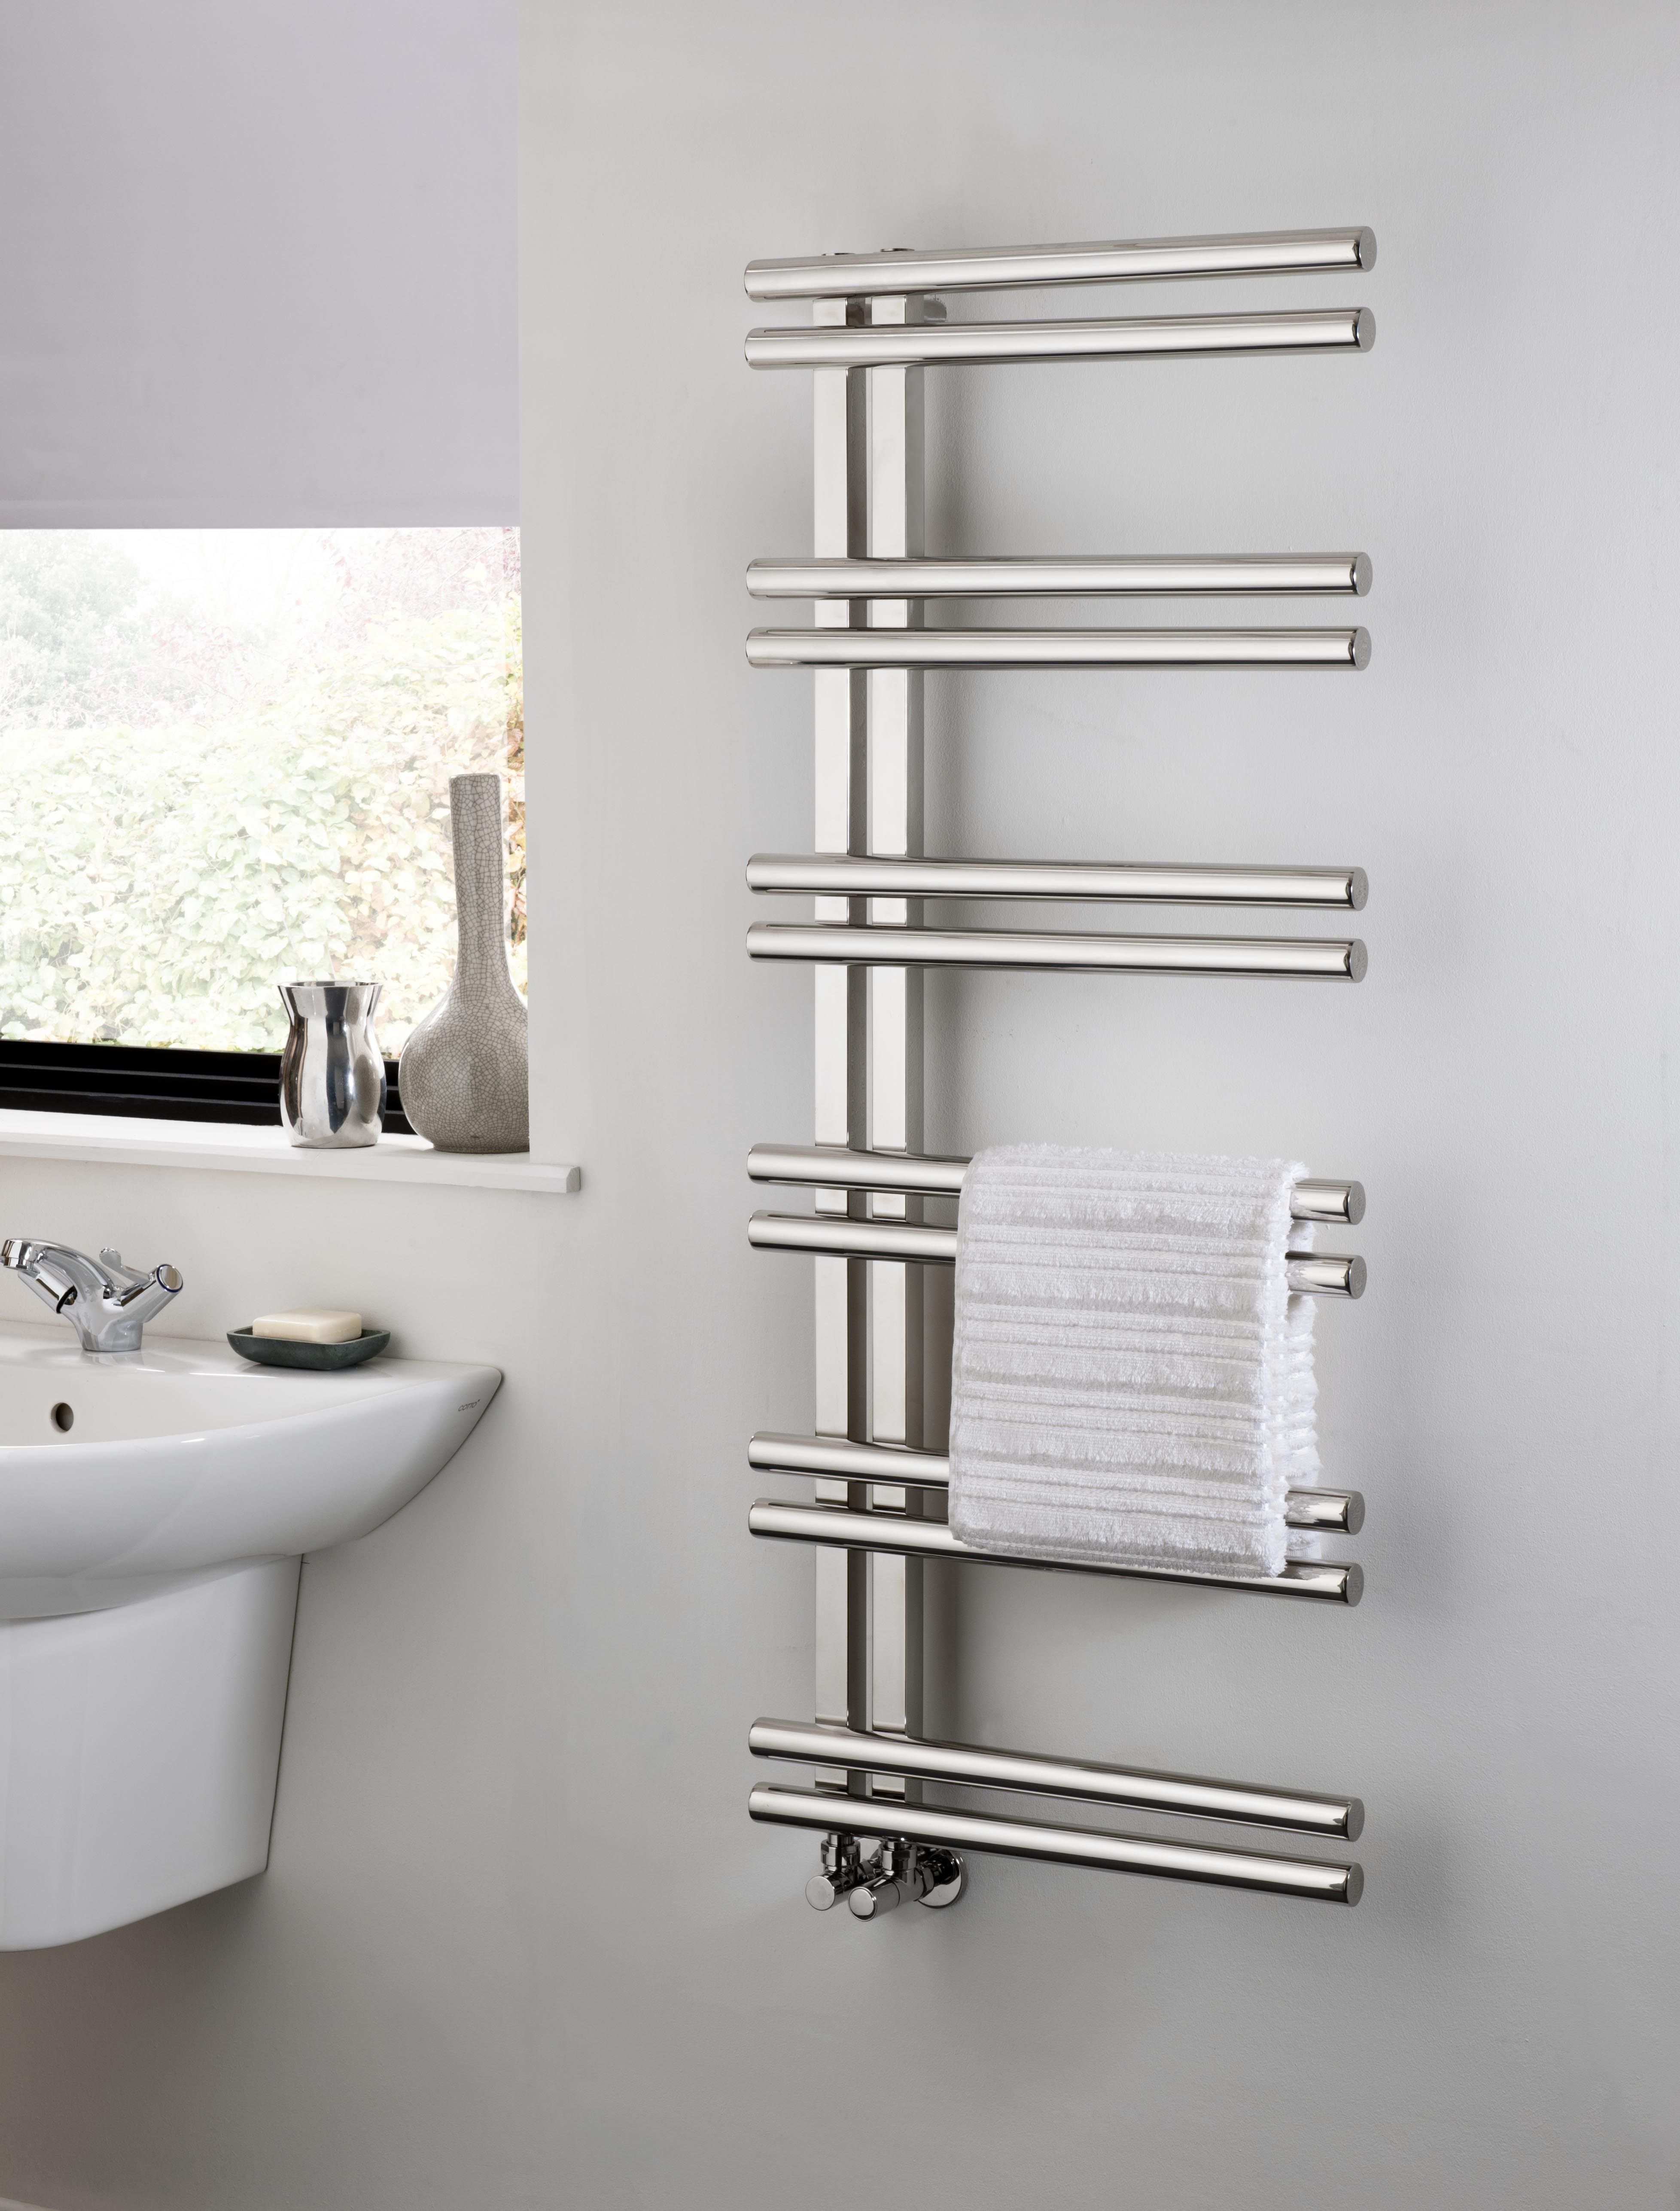 The Radiator Company Stratos Stainless Steel Towel Rail, is a side loading  design making it easy to hang towels on. In stylish polished stainless  steel it ...